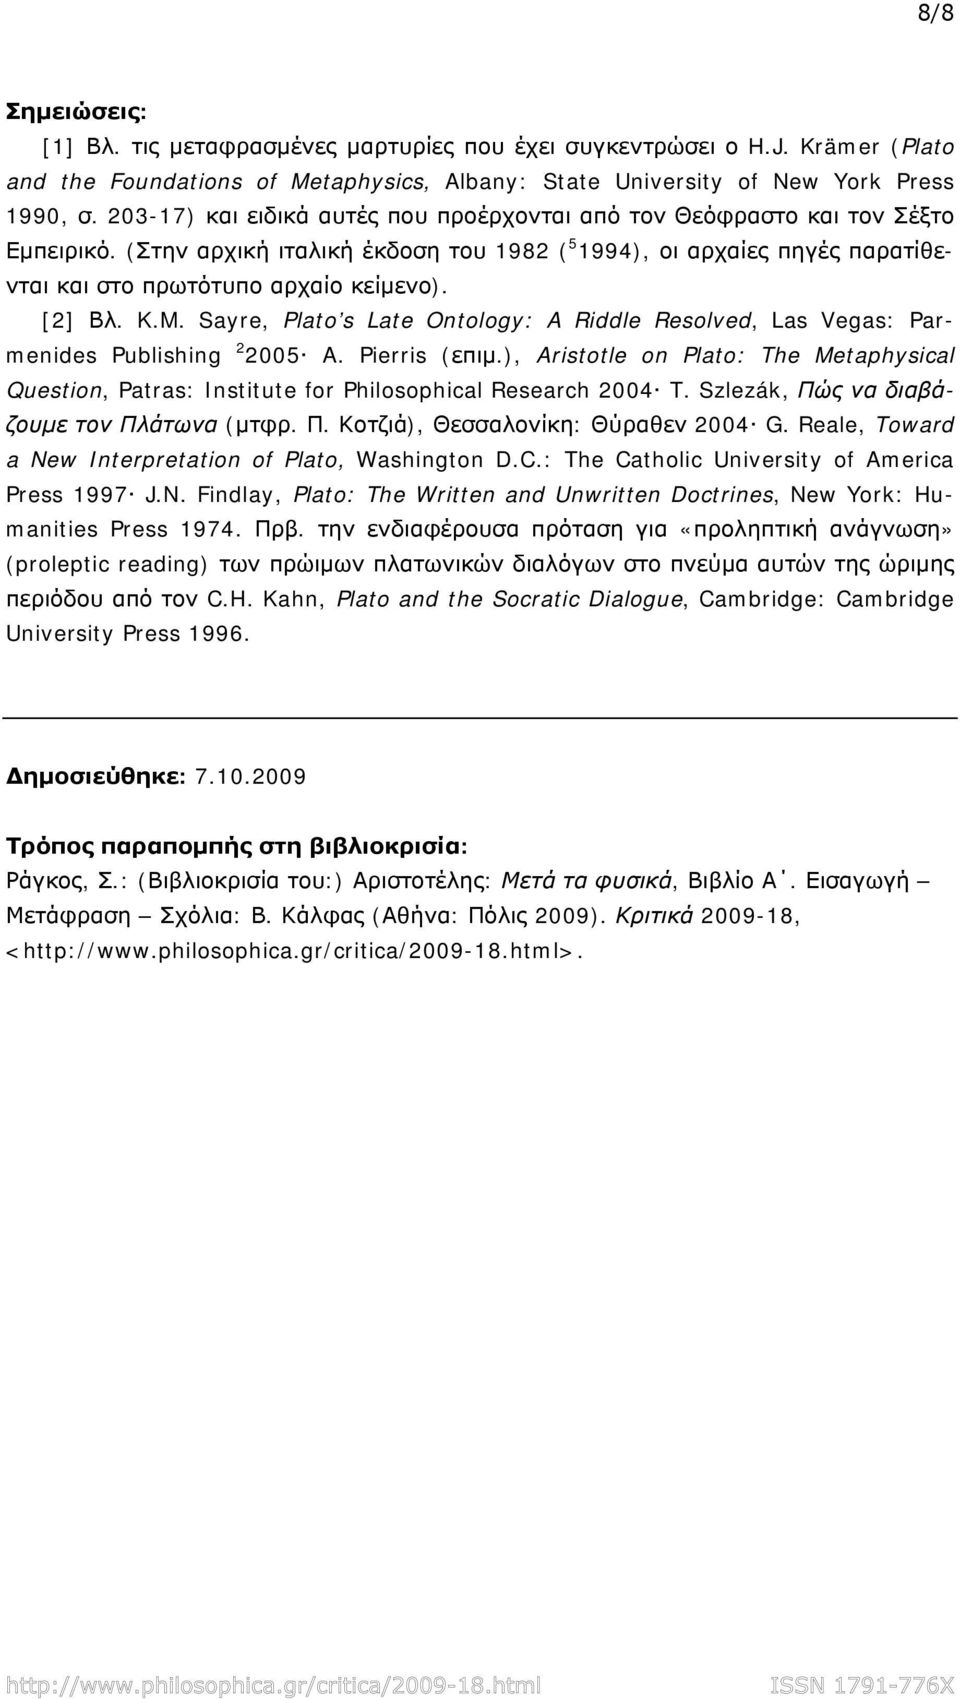 [2] Βλ. K.M. Sayre, Plato s Late Ontology: A Riddle Resolved, Las Vegas: Parmenides Publishing 2 2005 A. Pierris (επιμ.